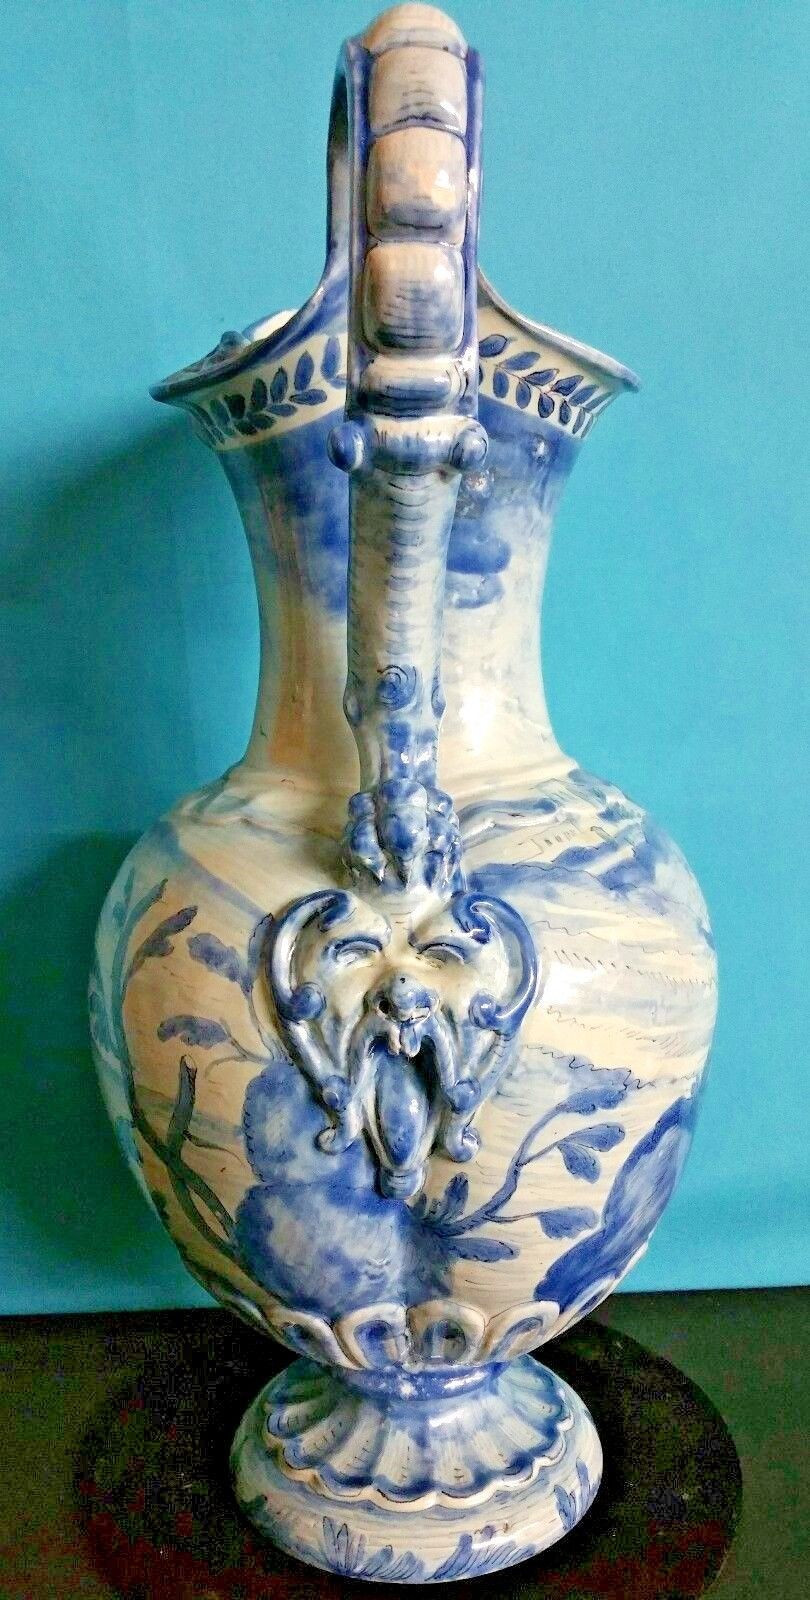 vintage italian pottery vase of antique large ceramic pottery cantagalli ewer 17 1 2 florence italy intended for antique large ceramic pottery cantagalli ewer 17 1 2 florence italy signed ebay